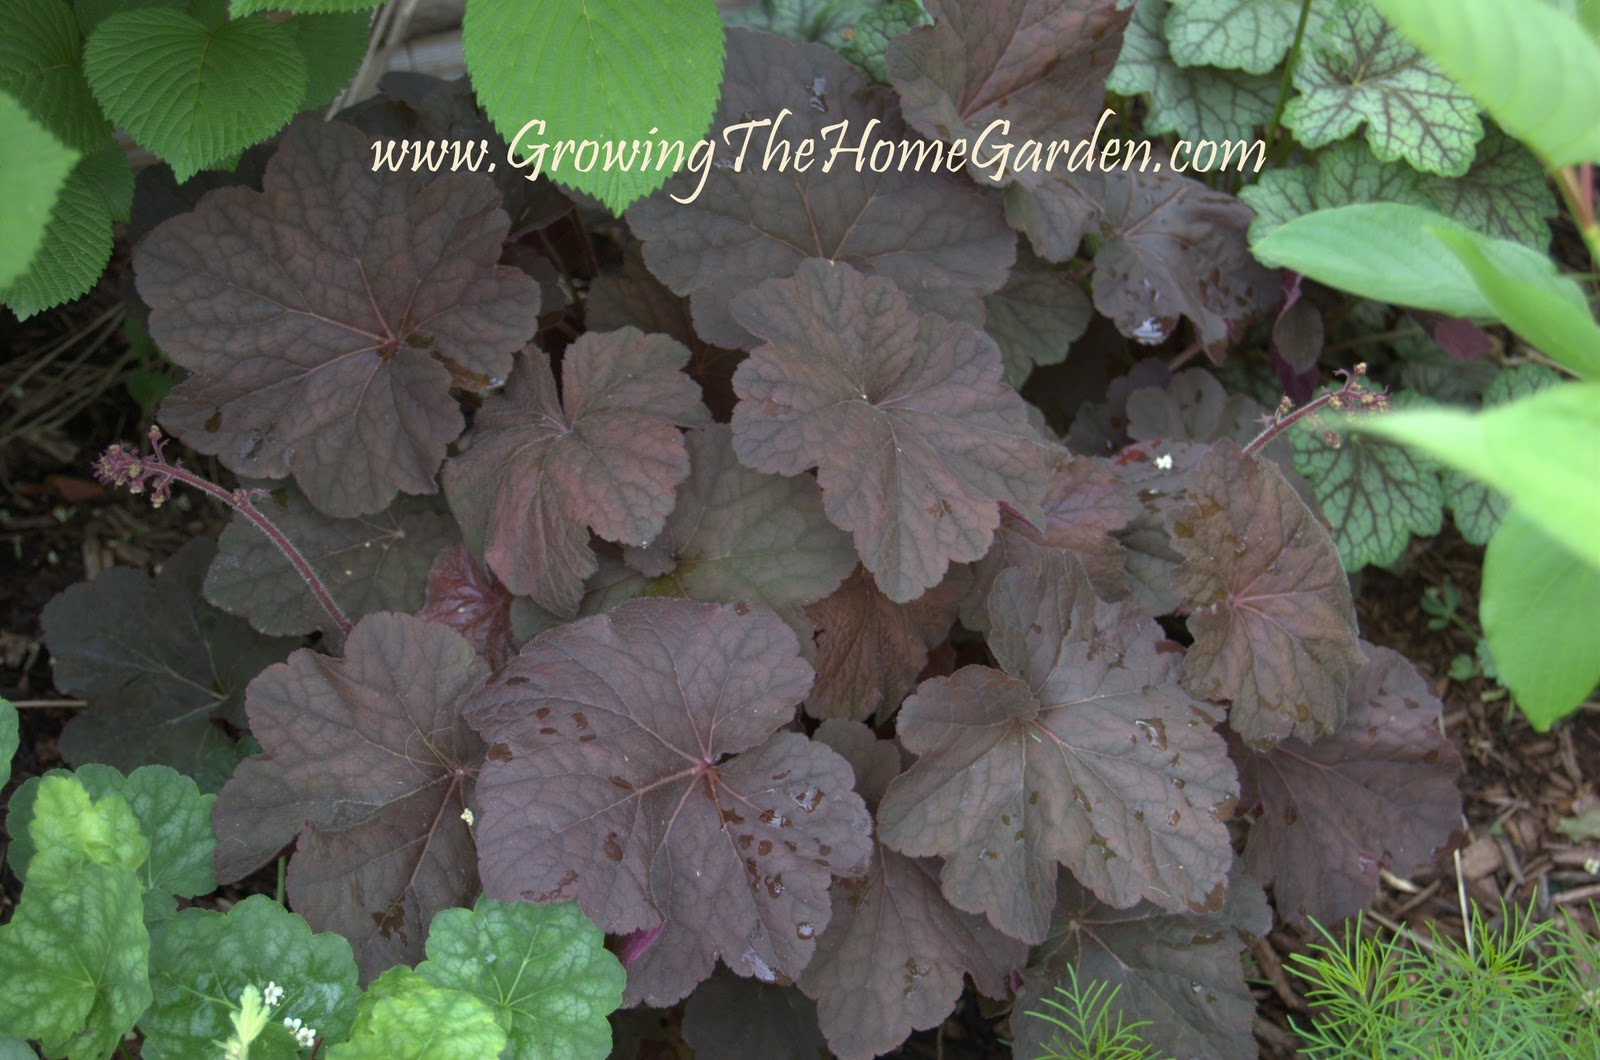 Heuchera (Coral Bells) from Cool Plants for The Home Garden